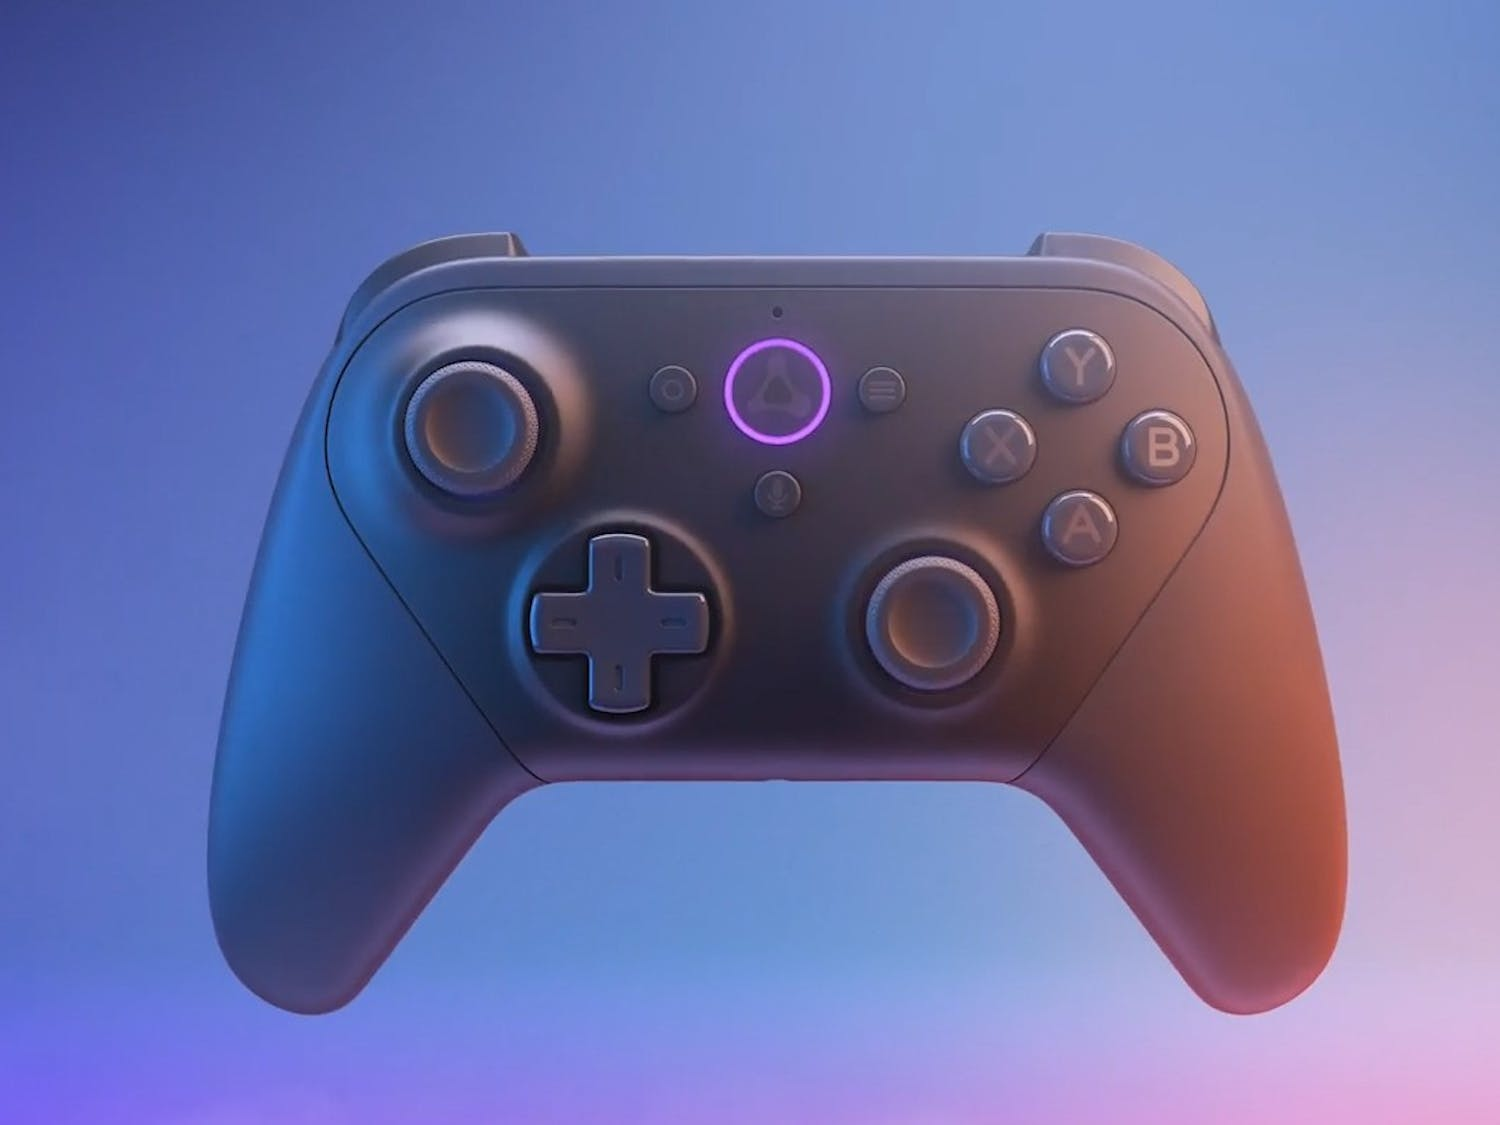 Amazon's new gaming platform comes with highly advanced controllers and technology, but is it really the answer to video game streaming?